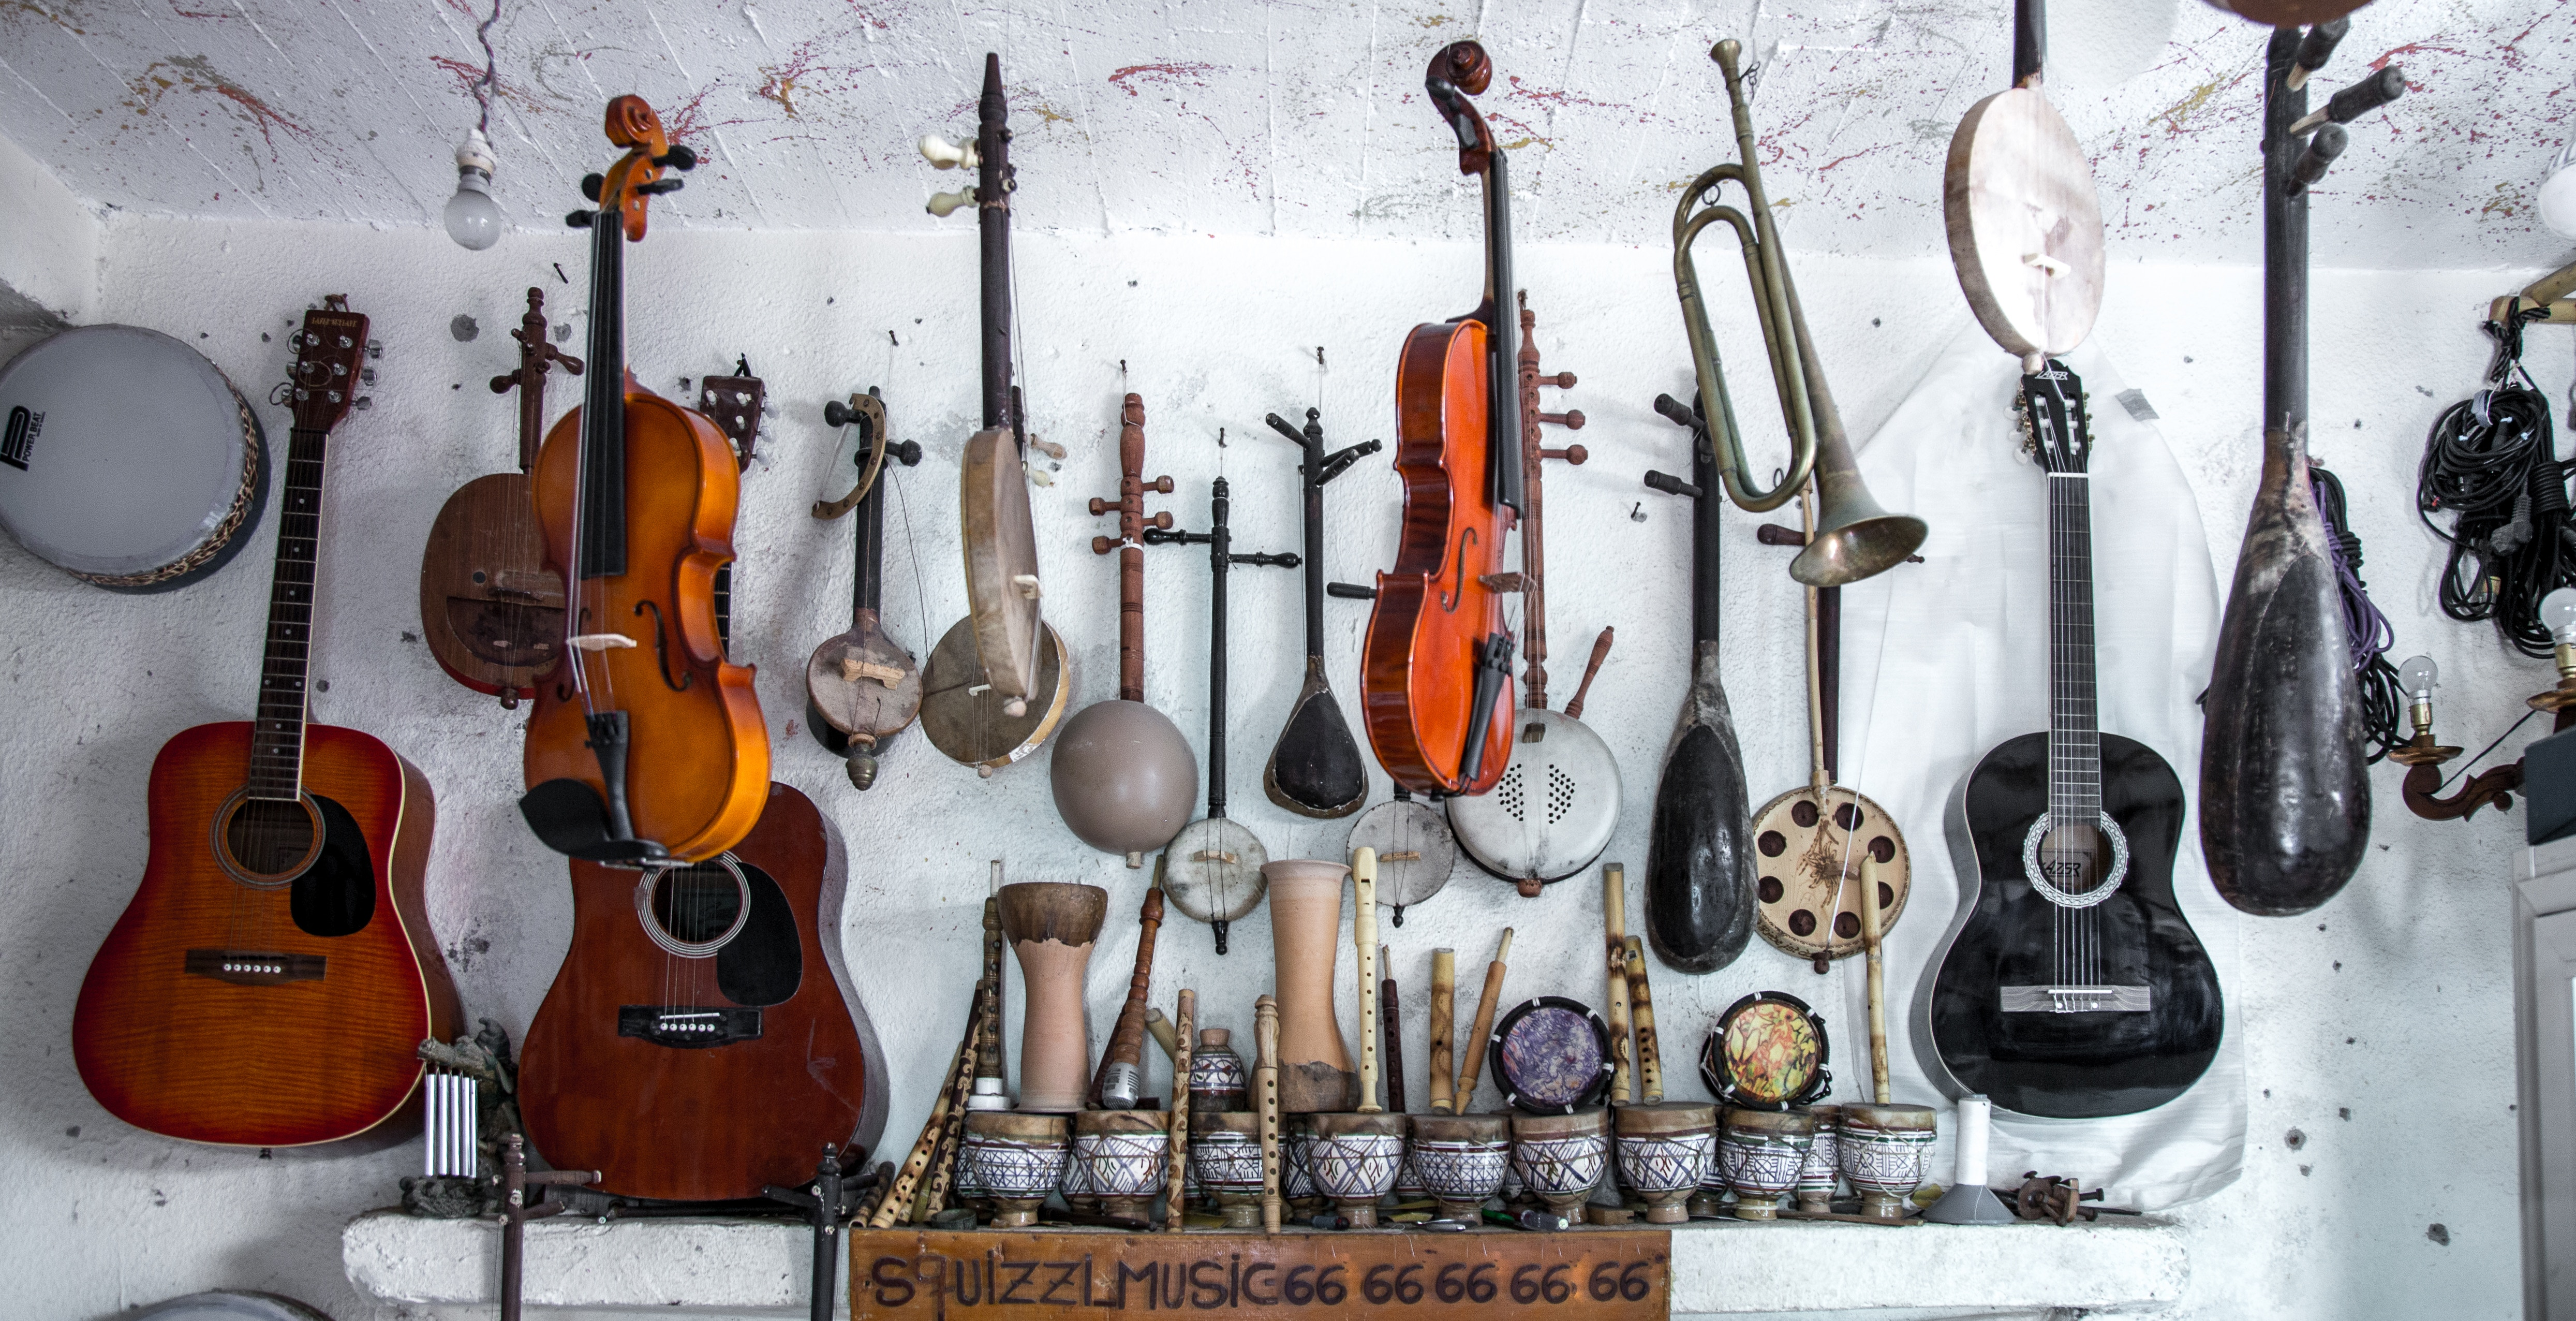 Choosing the right instrument for you